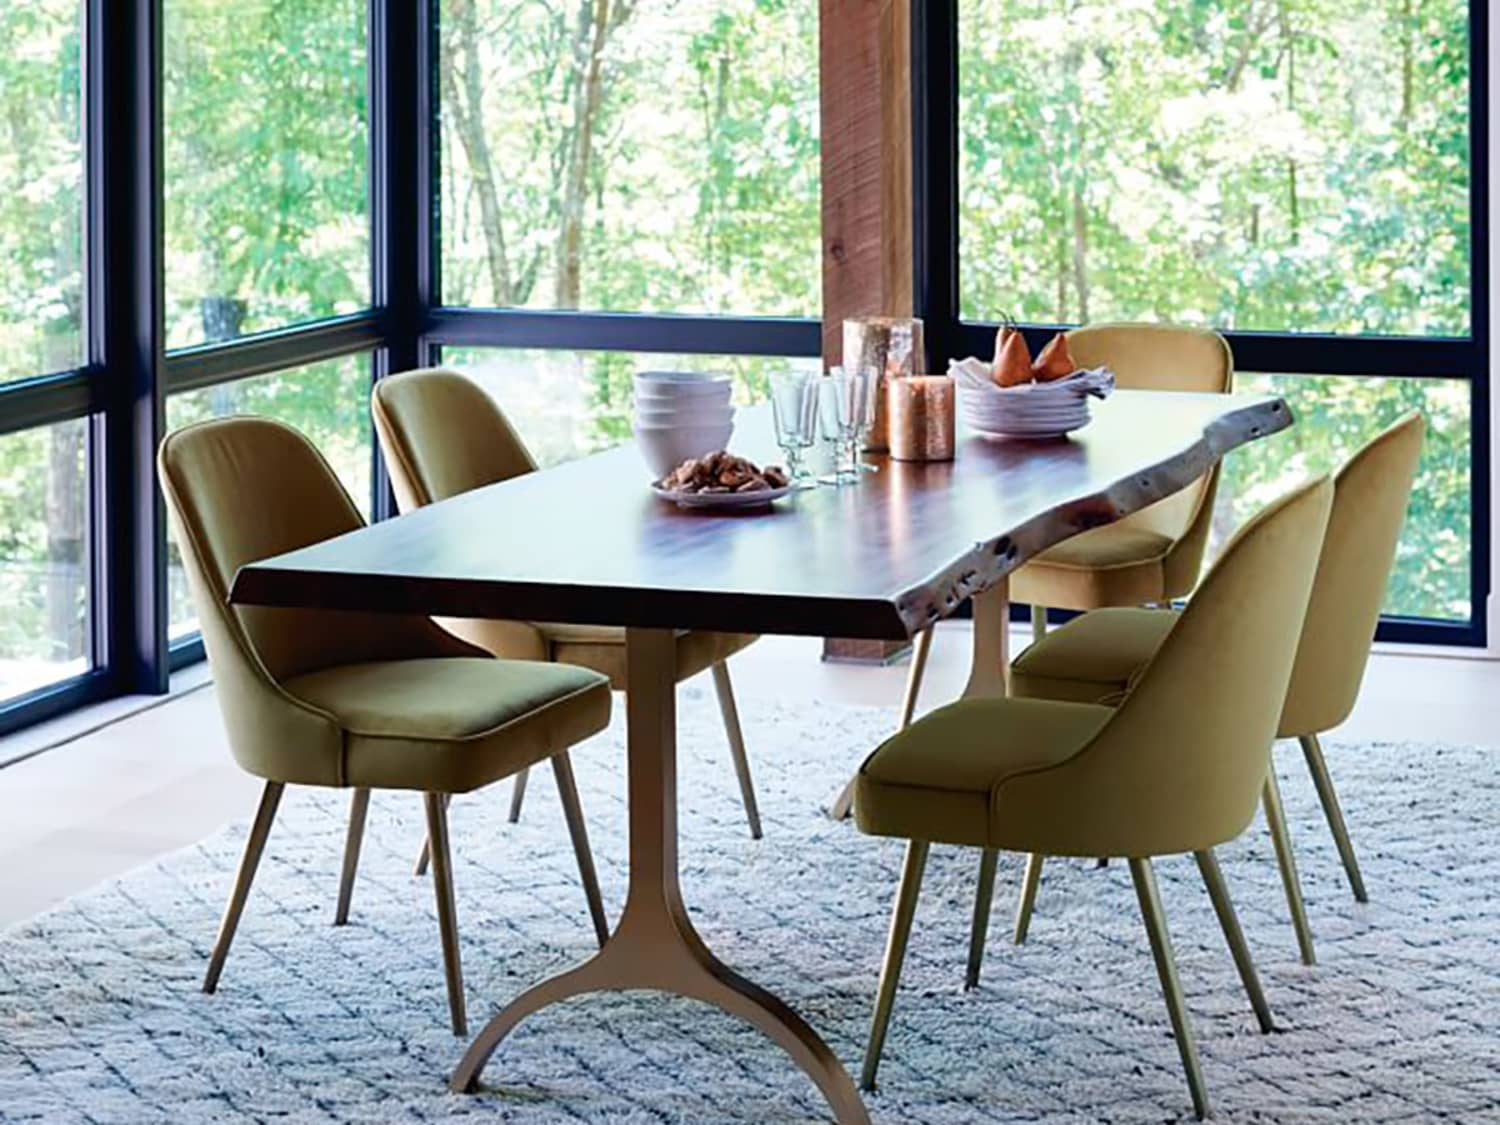 Low Medium High Upholstered Dining Chairs For Any Budget Apartment Therapy